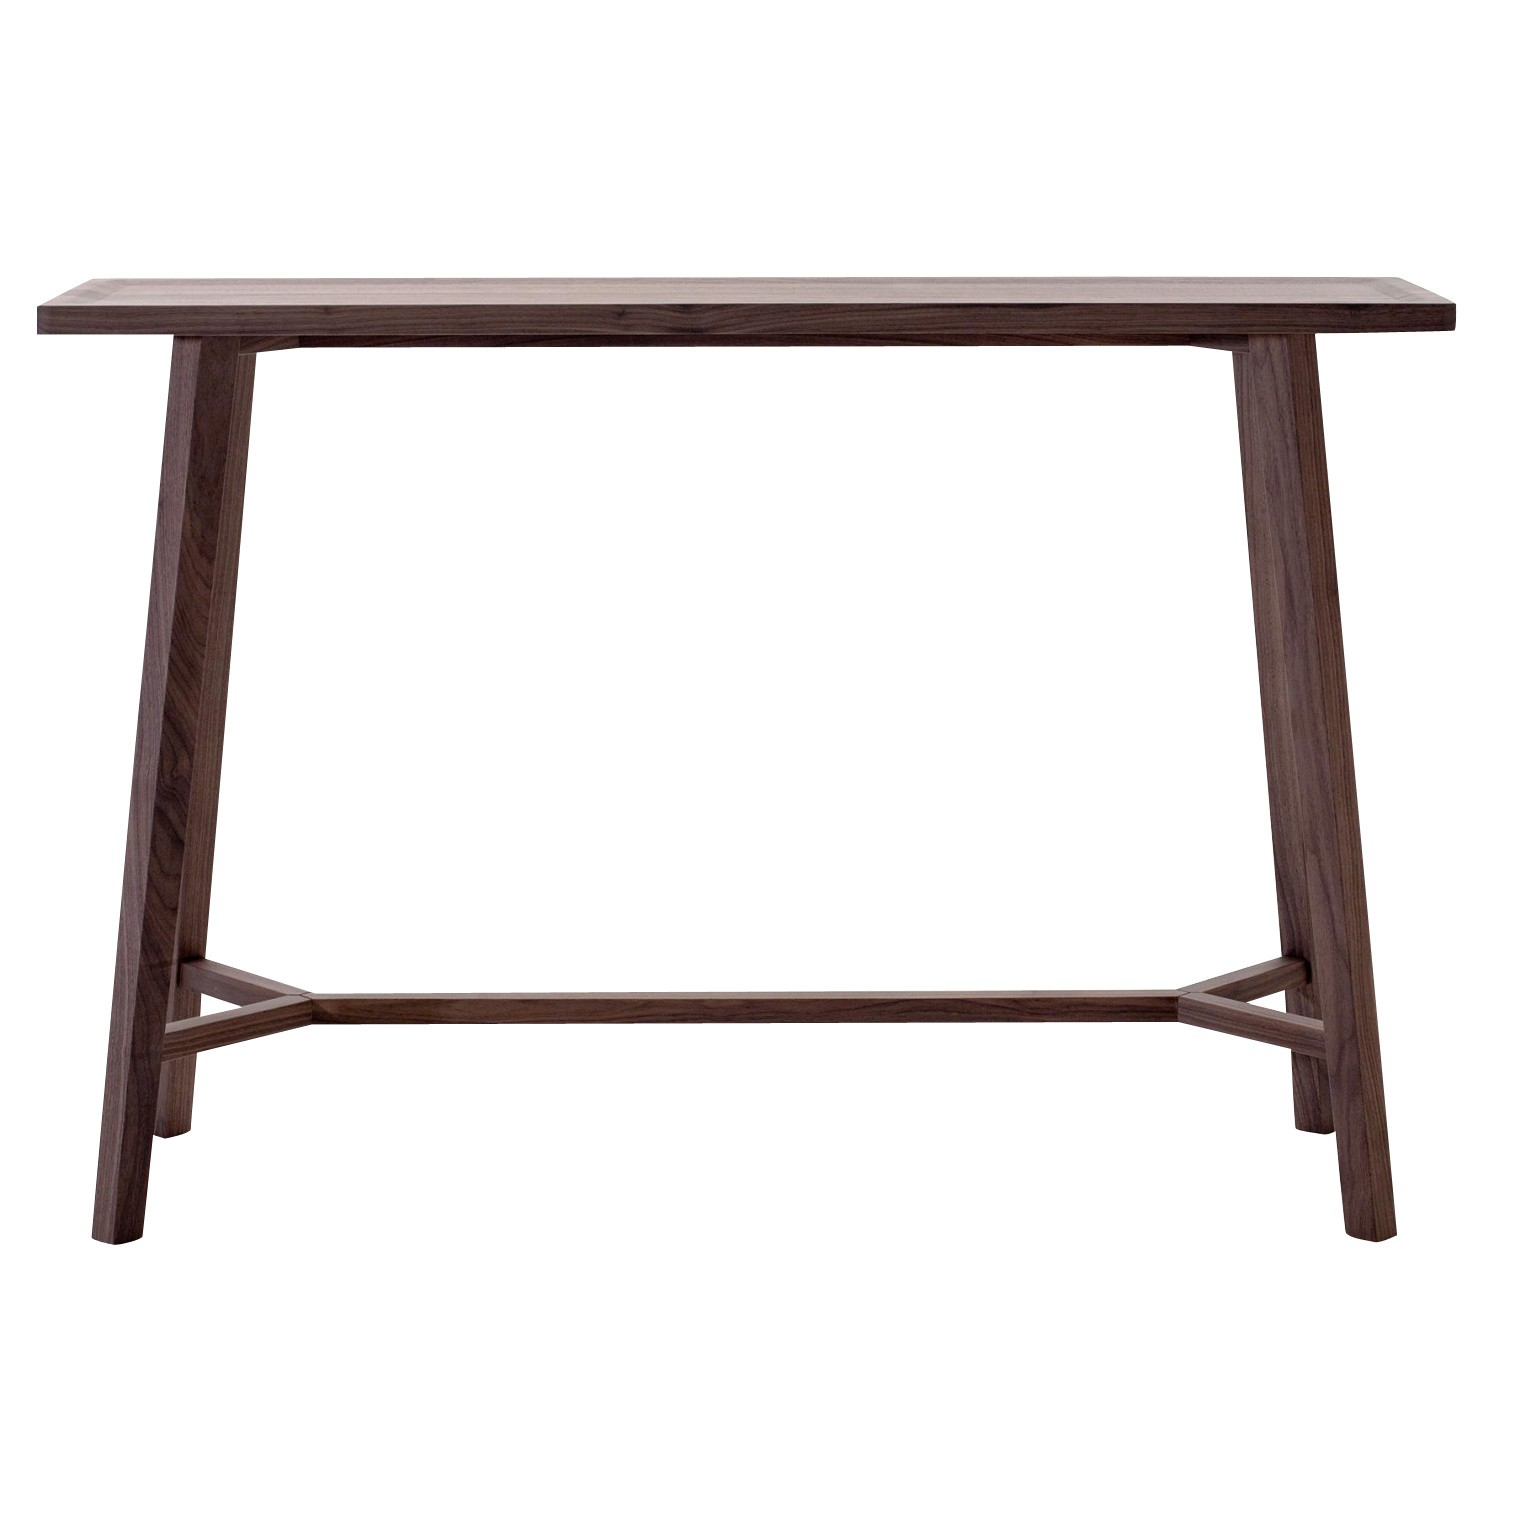 Table De Jardin Bistrot Charmant Gray 61 Console Of 32 Luxe Table De Jardin Bistrot